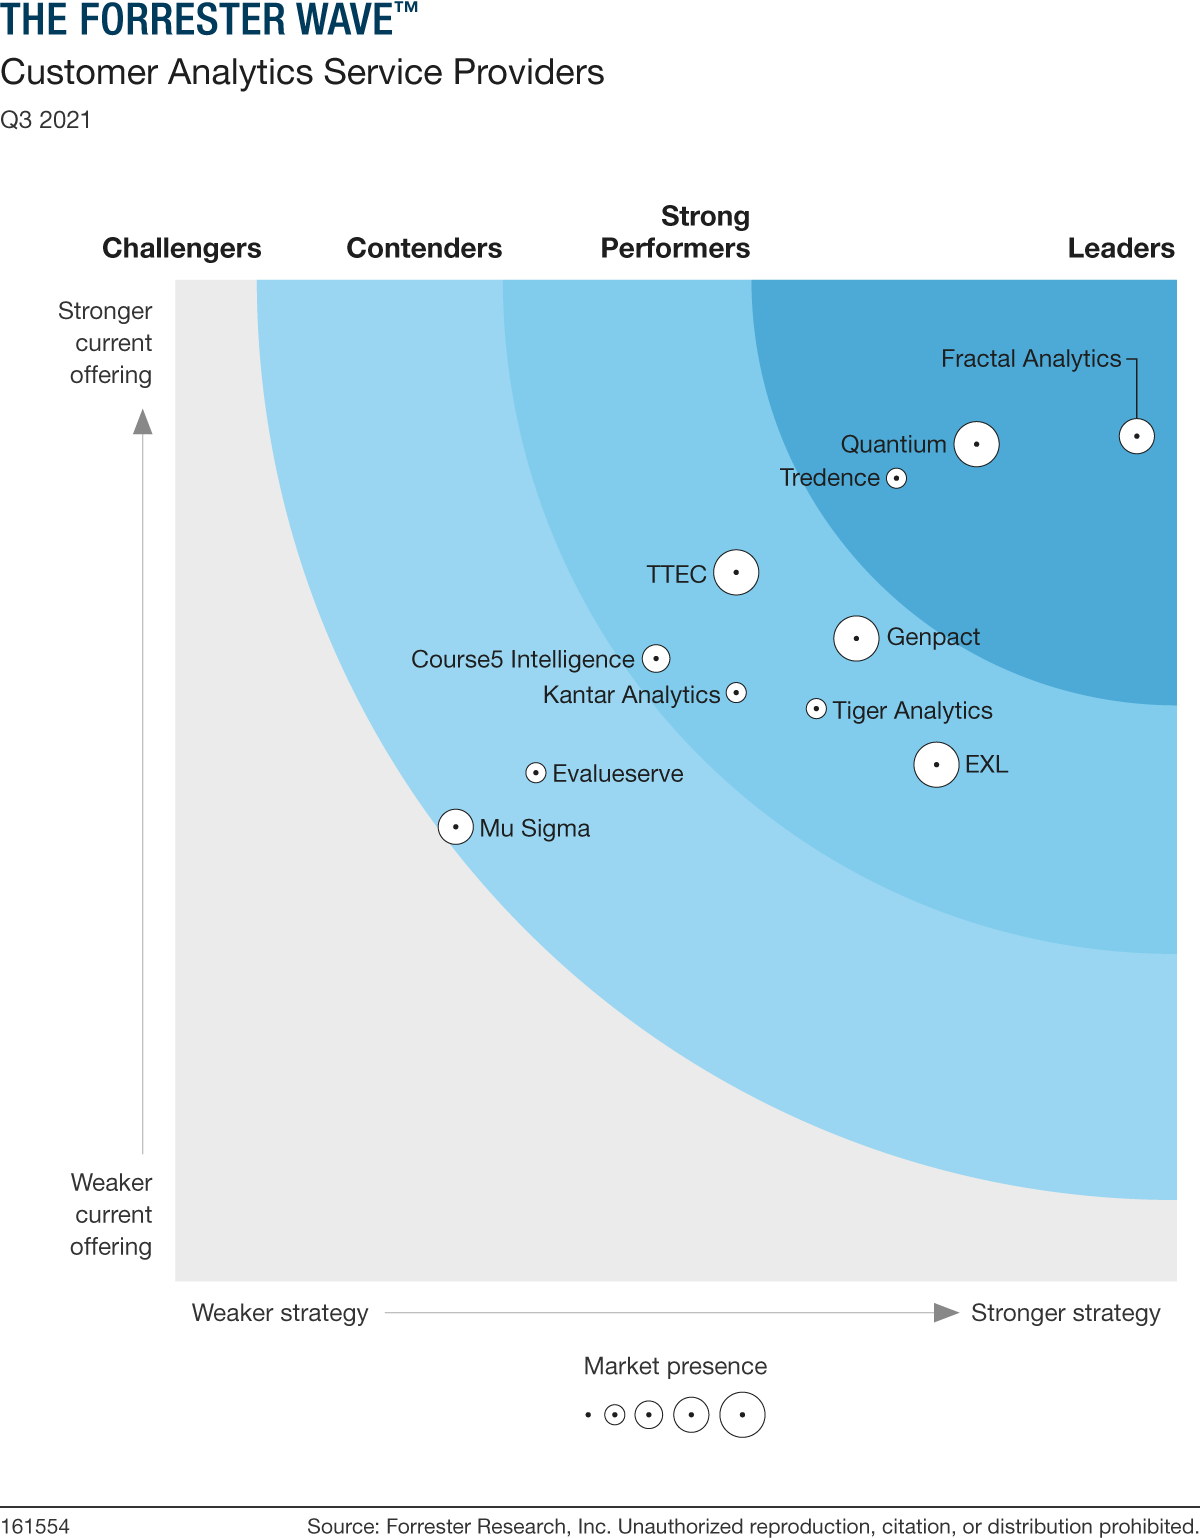 The Forrester Wave™ Customer Analytics Service Providers, Q3 2021